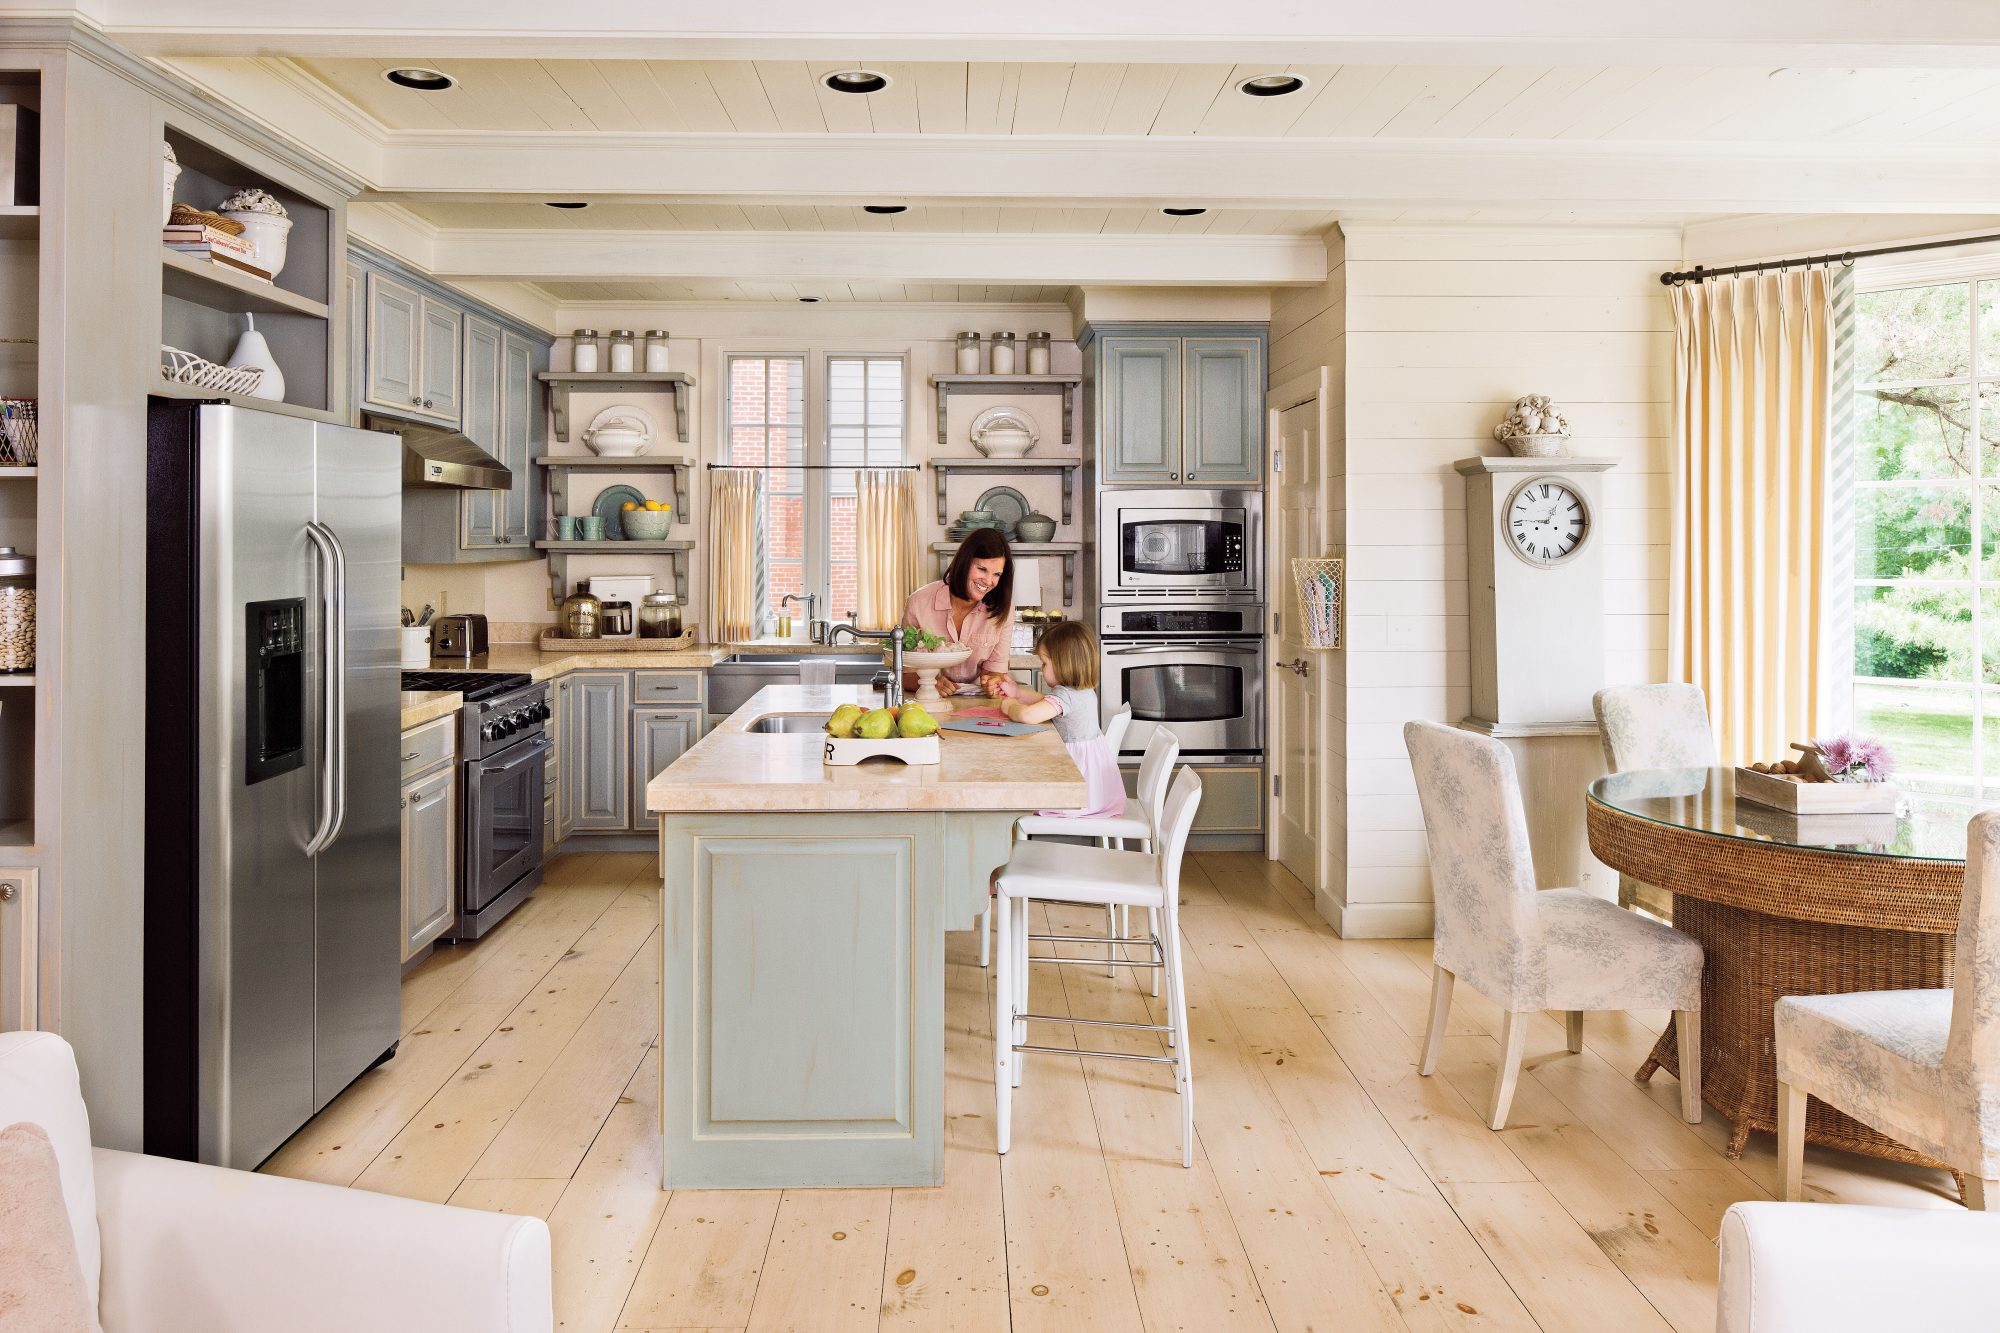 L Shaped Kitchen Layout Ideas kitchen layouts and essential spaces - southern living